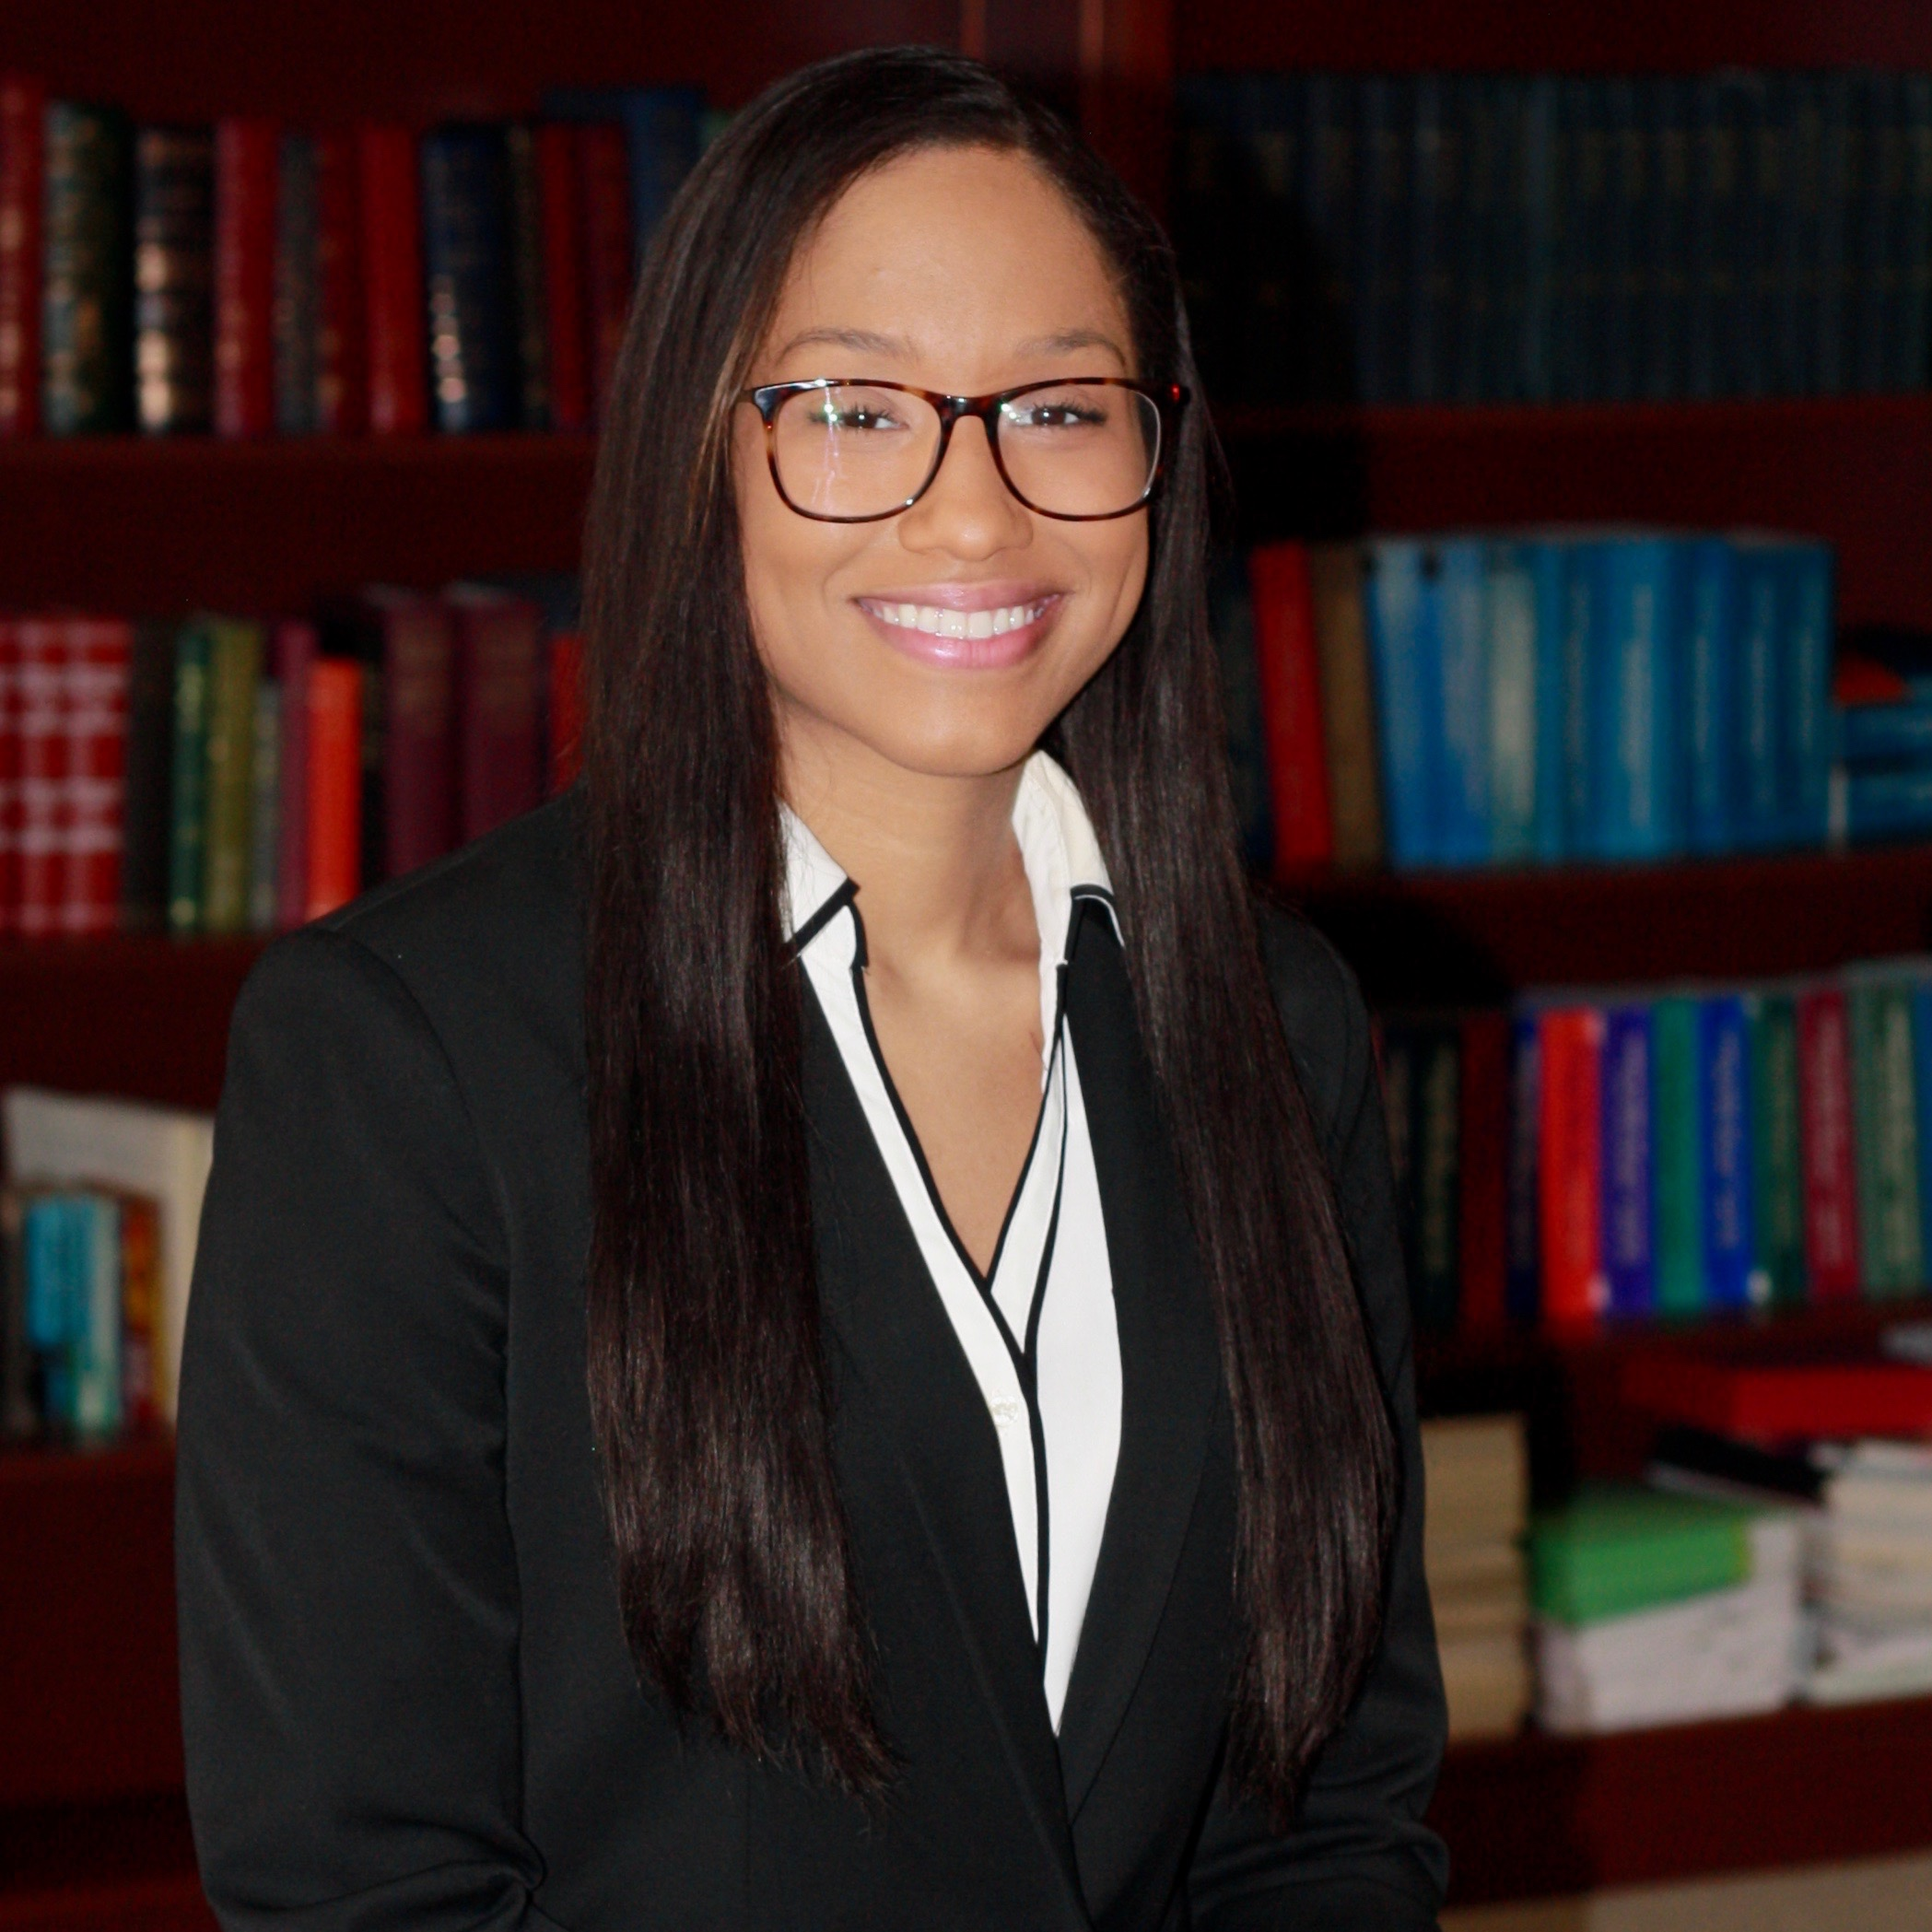 Cierra Davis - Cierra is a Victims' Rights Advocate in our Columbus location. She graduated with a bachelor's in Liberal Arts & Sciences with paired minors in English, Legal Studies and Forensic Psychology. Cierra is currently pursuing her master of law degree in human rights law at the University of Dayton School of Law. Prior to joining OCVJC, Cierra served as a Summer Associate for Legal Aid of Western Ohio within the Stability & Independence for Survivors Practice Group.She currently serves as a member of the street outreach task force at Oasis House in Dayton, Ohio--whose efforts are geared towards women who have been sexually exploited and trafficked. Cierra's inability to remain silent about the injustices that transpire towards victims of sex crimes is what drew her to pursue a career as a Victims' Rights Advocate at OCVJC.